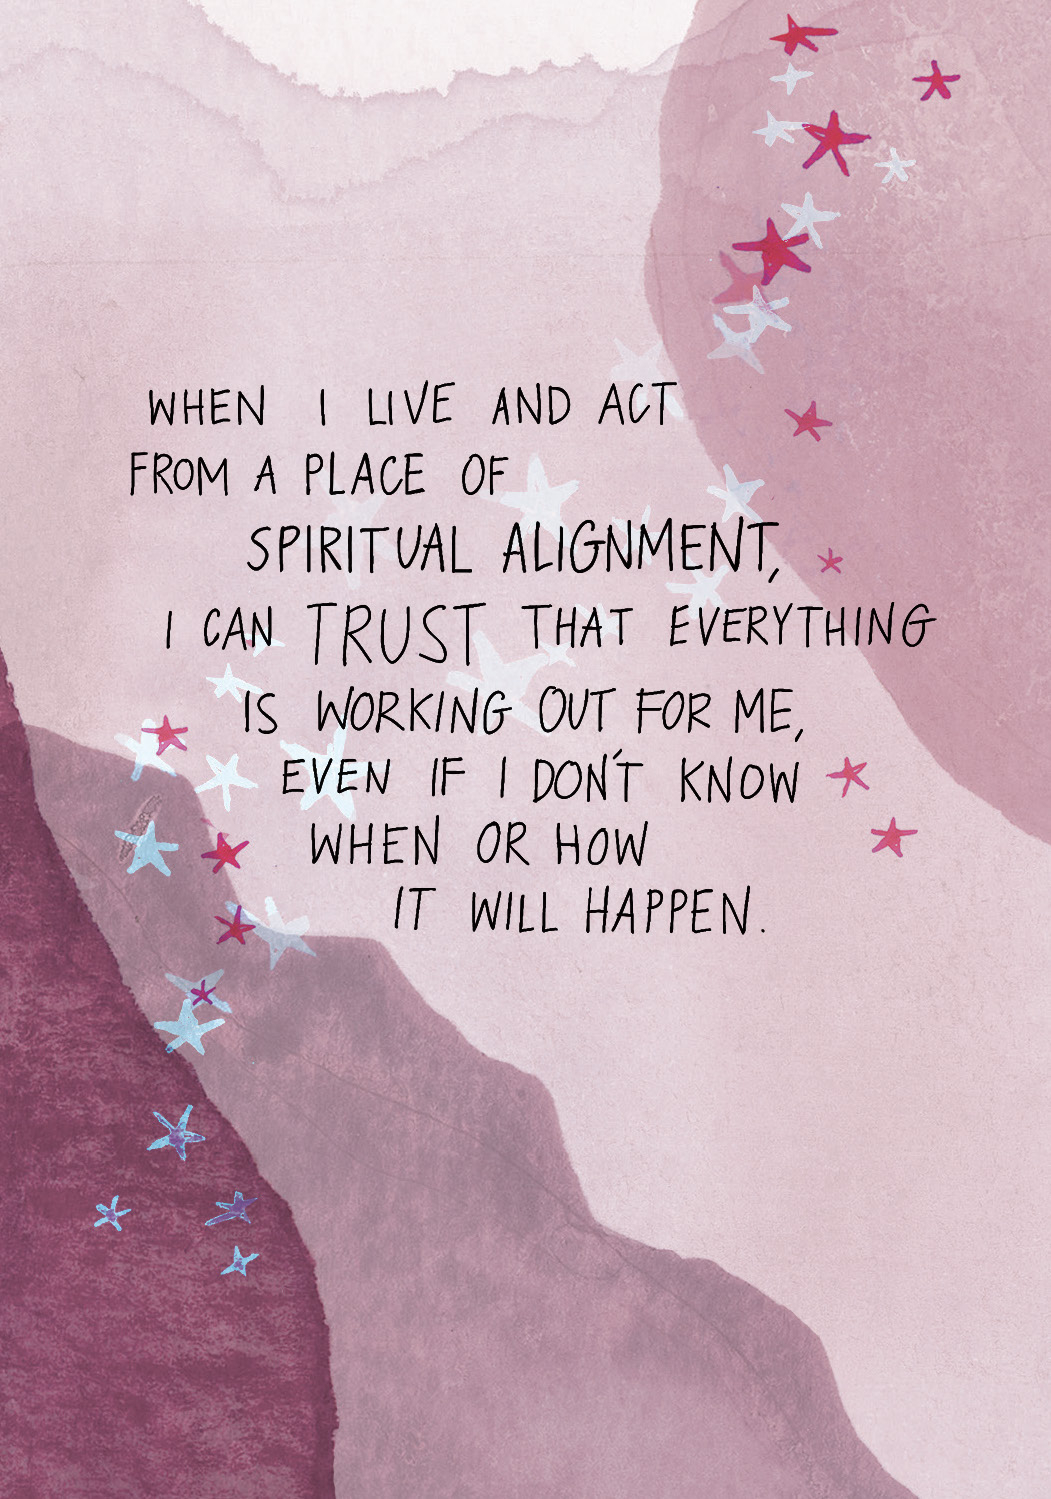 When I live and act from a place of spiritual alignment, I can trust that everything is working out for me, even if I don't know when or how it will happen. | Super Attractor card deck by Gabby Bernstein